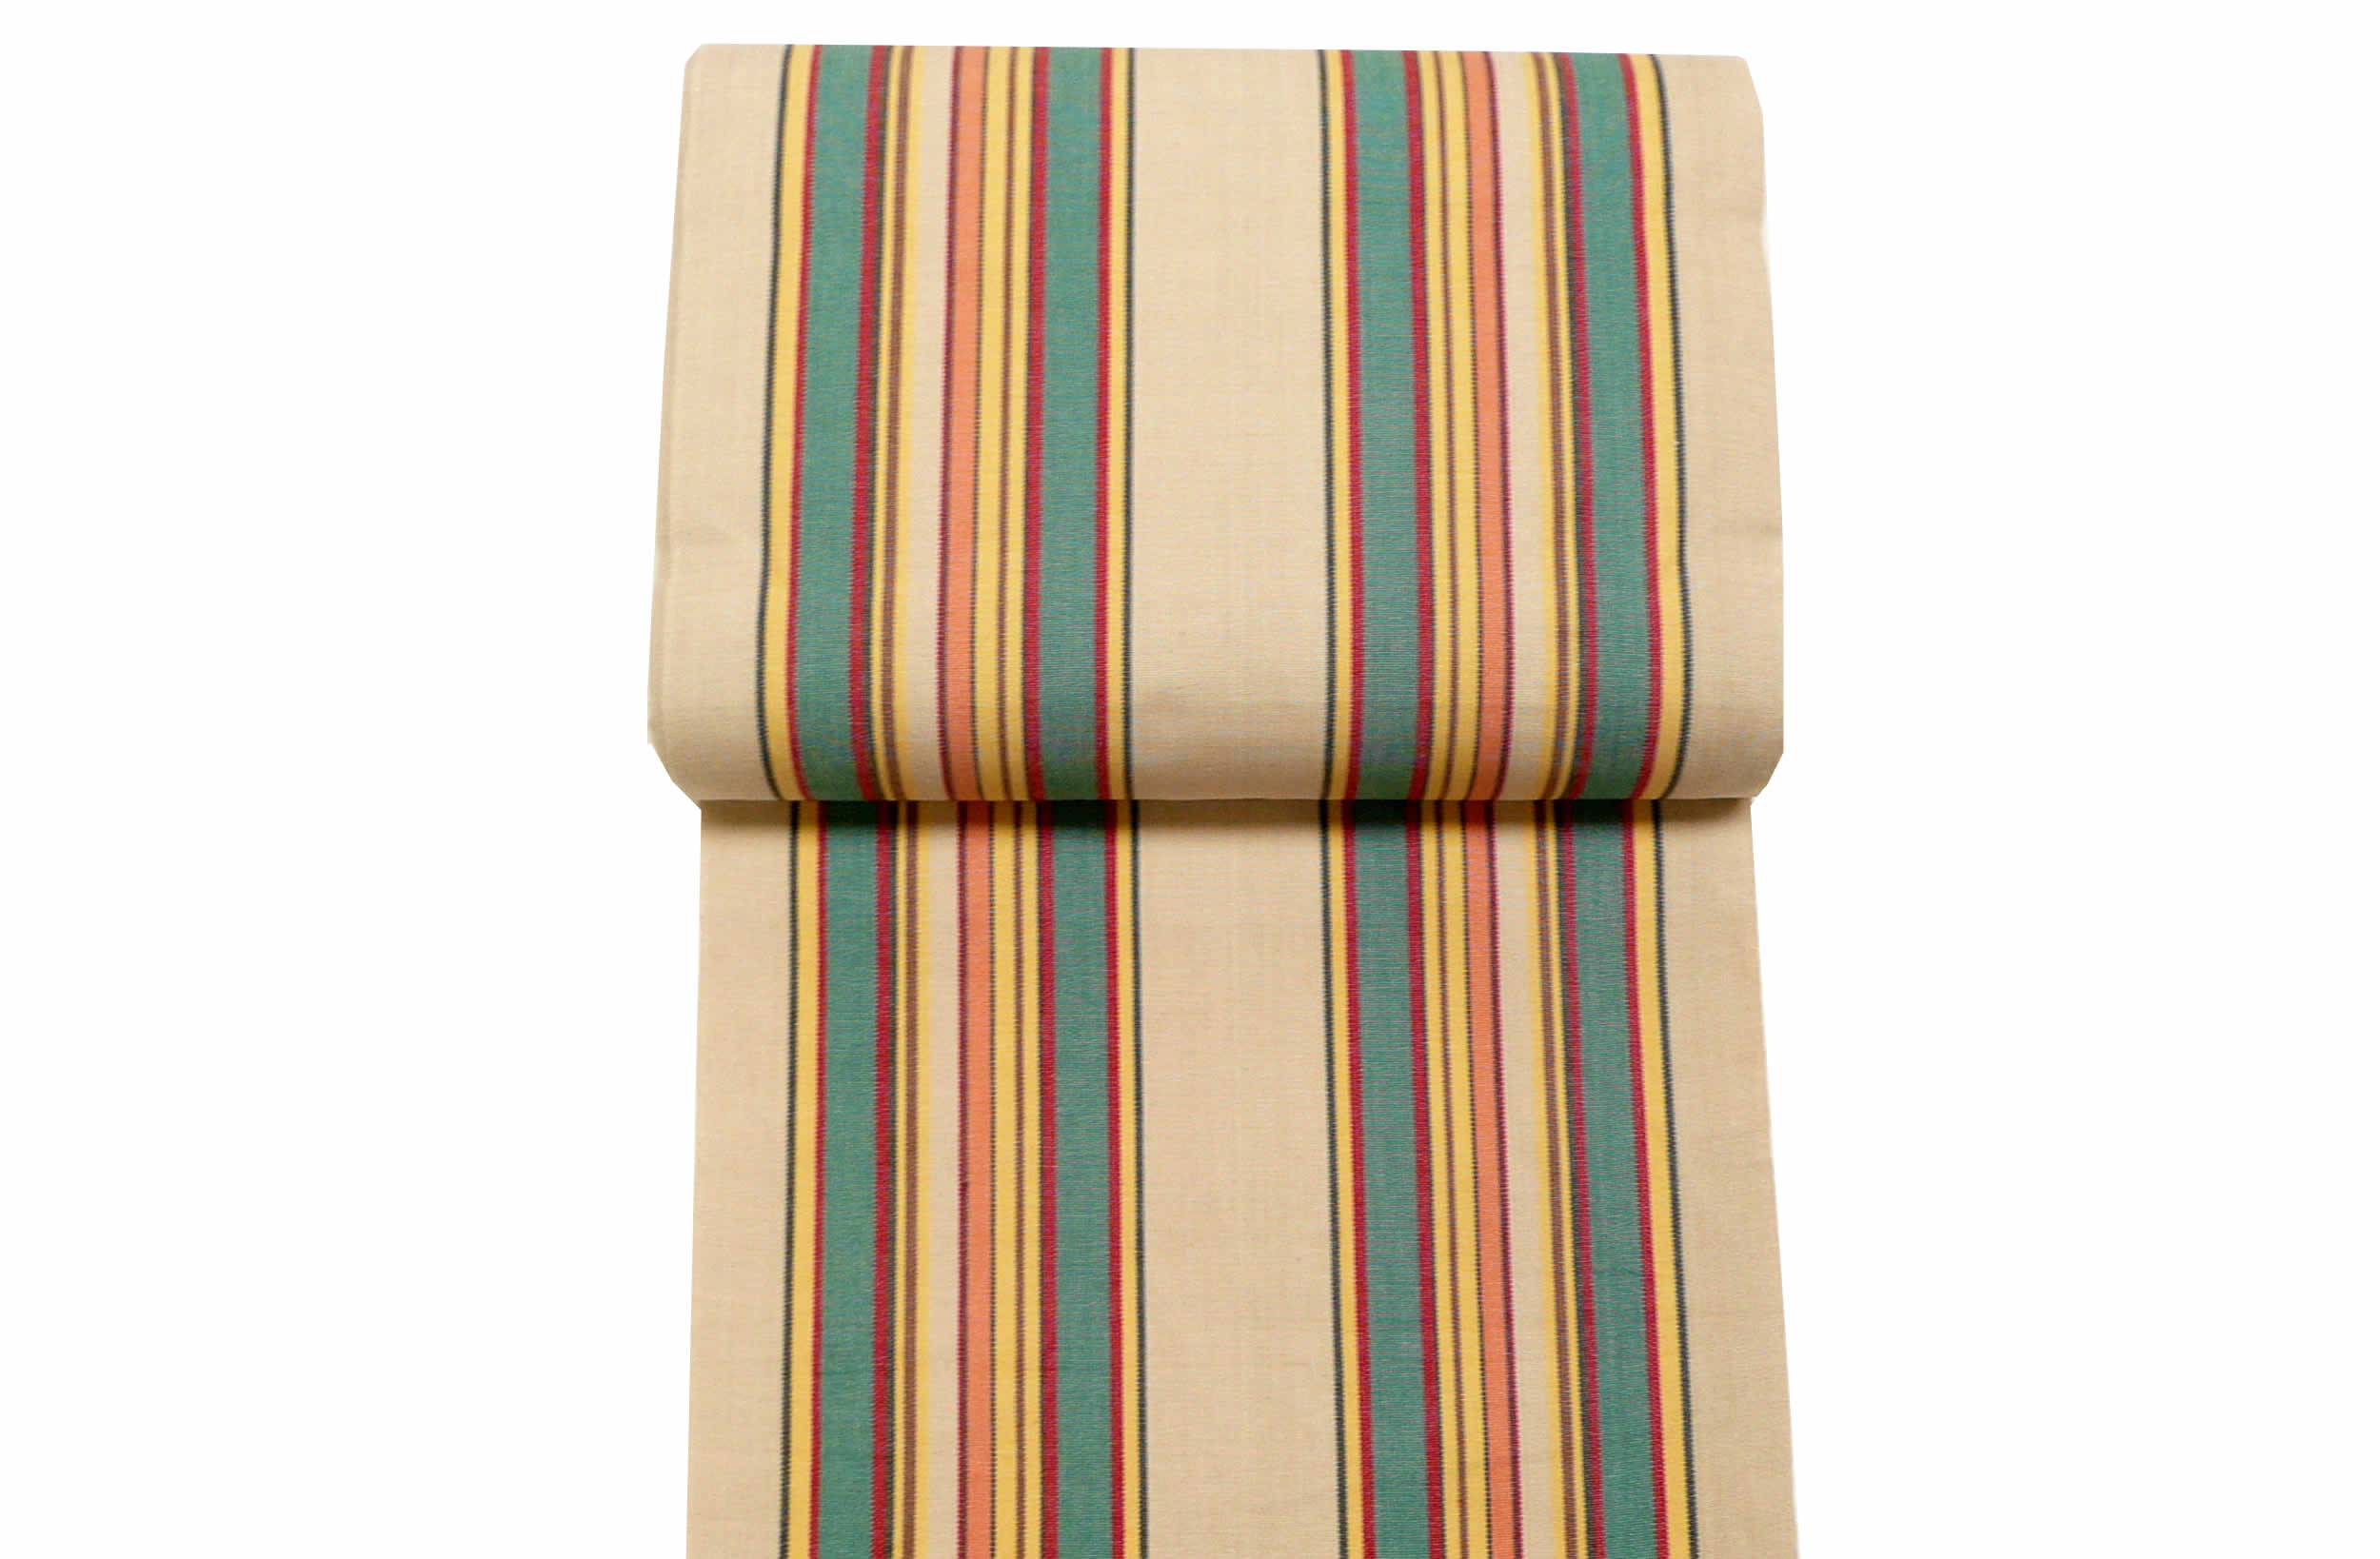 Lido Vintage Deckchair Fabric